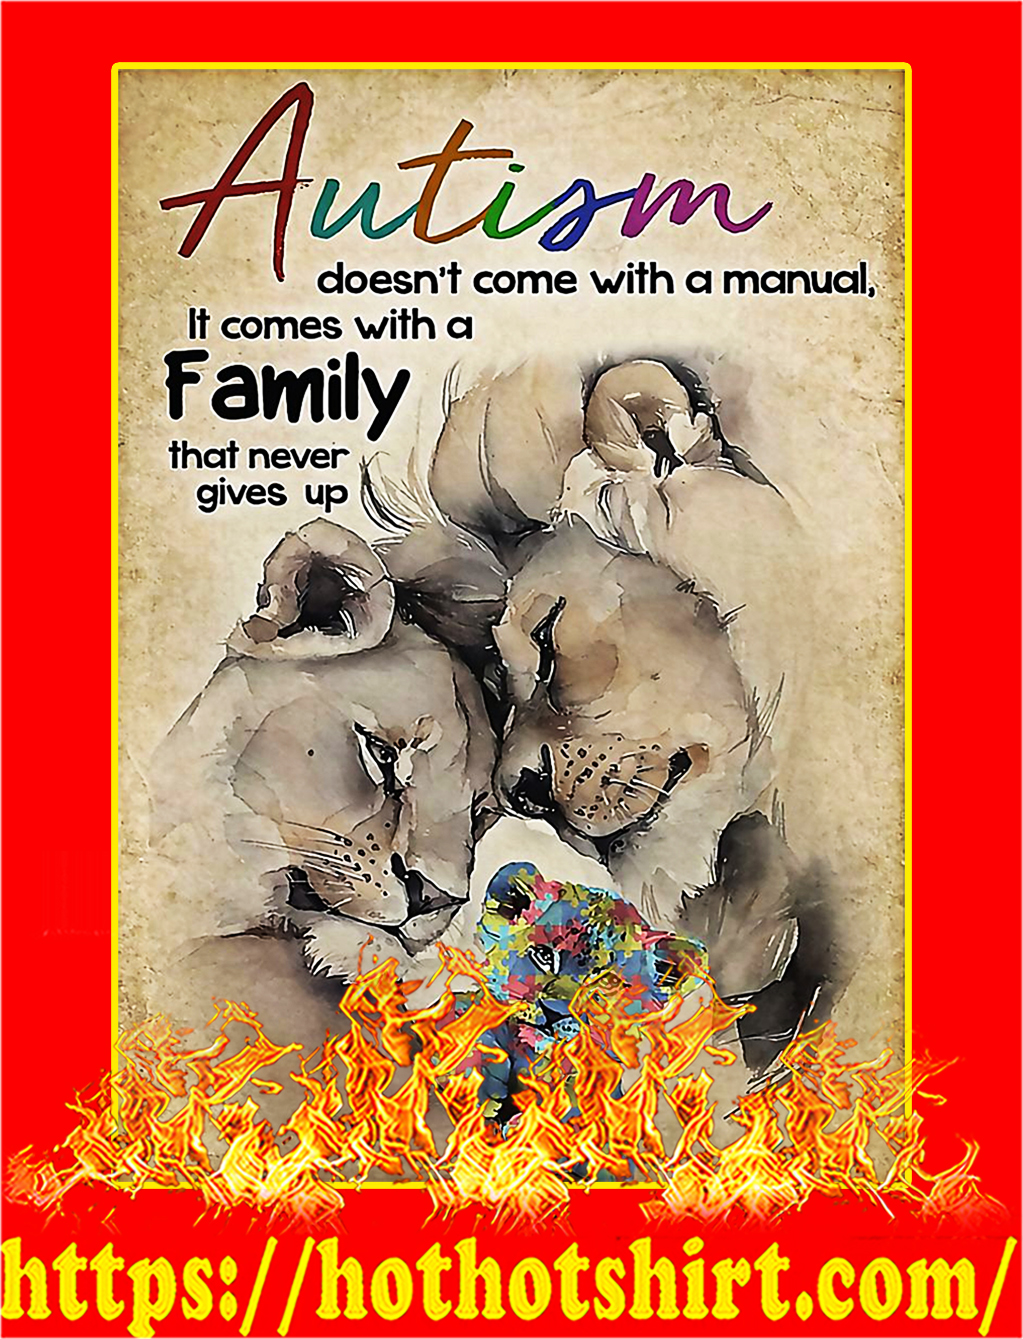 Lion Autism doen't come with a manual it comes with a family that never gives up poster - A2